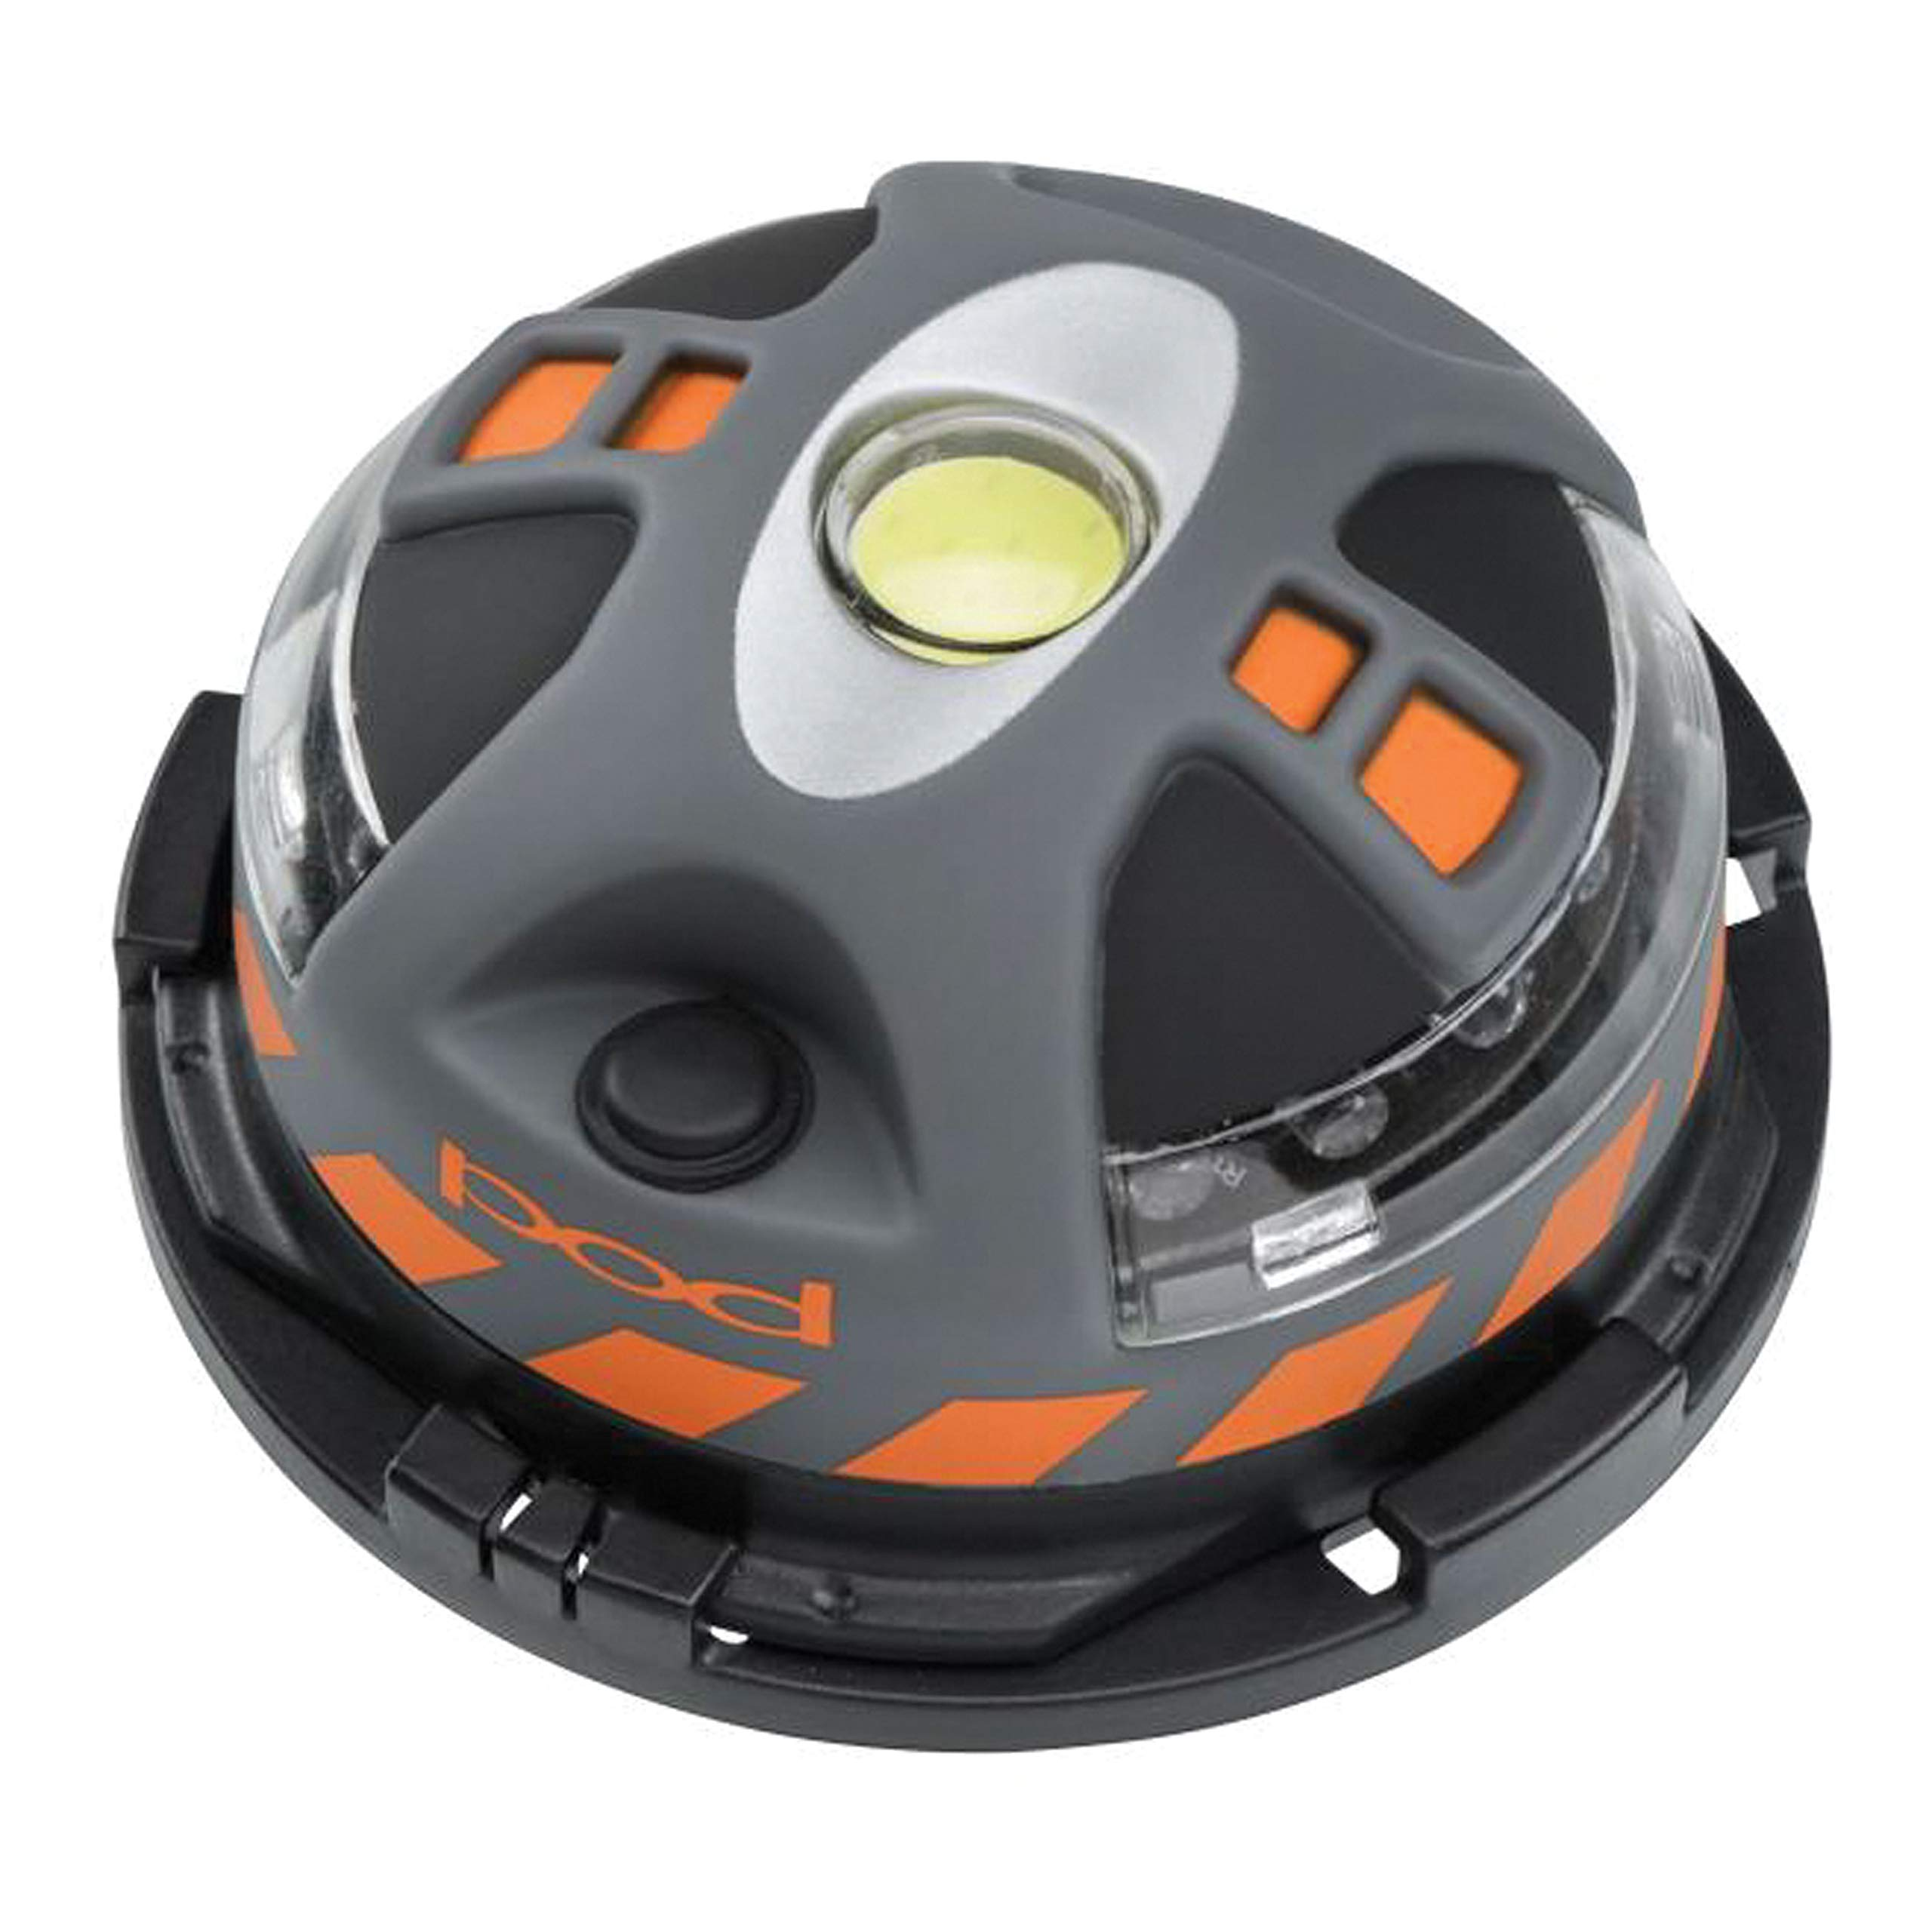 Reese Towpower PD110200 POD Hazard, Dual-Use Emergency Warning and Work Light, Weather Resistant